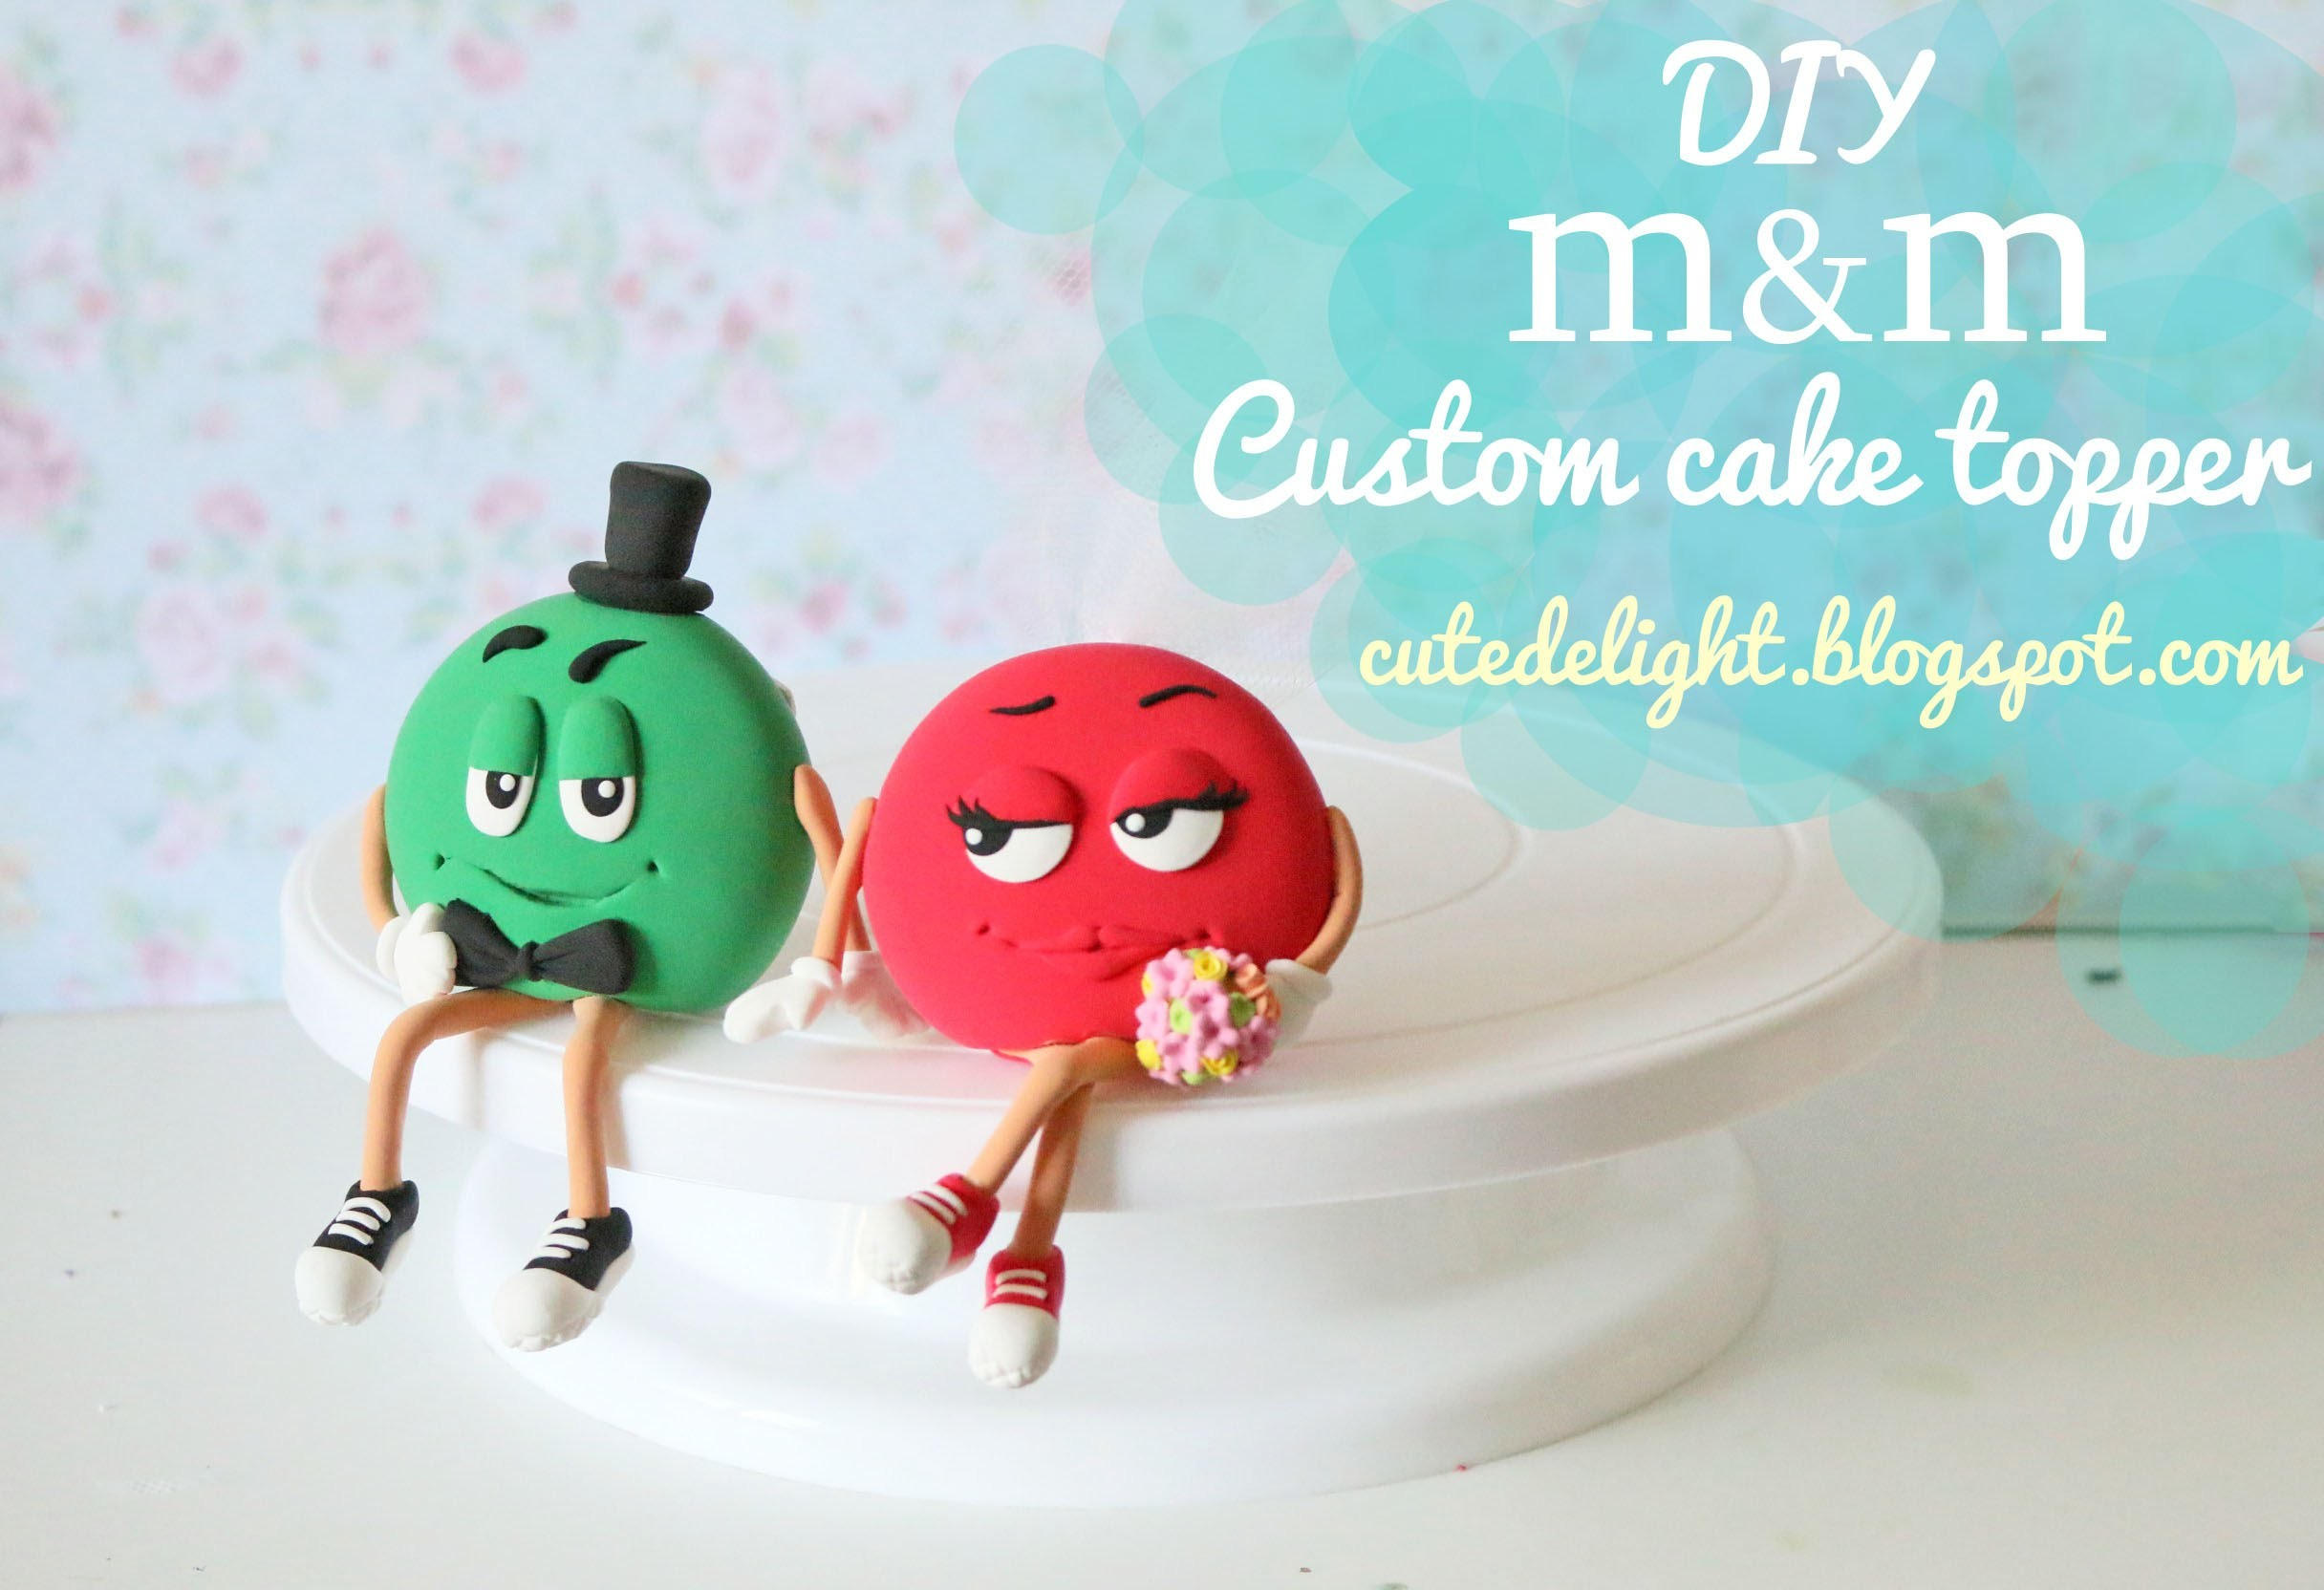 Cute Delight - m&m wedding cake topper tutorial - how to make DIY time lapse - 1 h = 30 sec